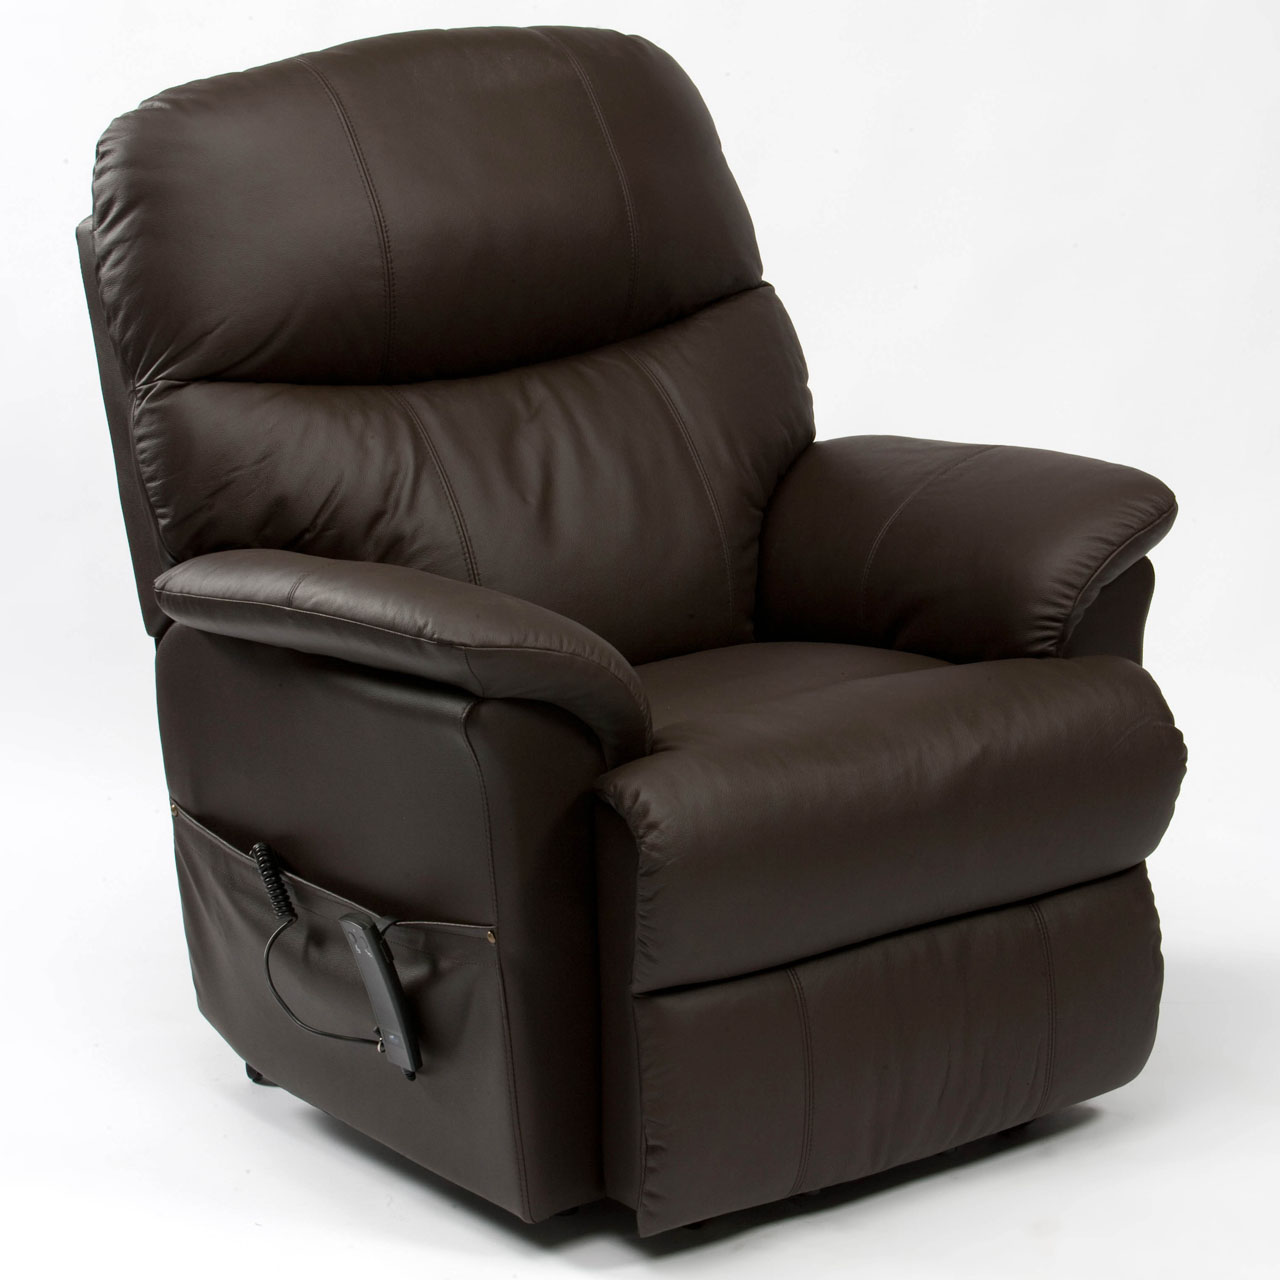 Lars single motor recliner chair for Recliner chair